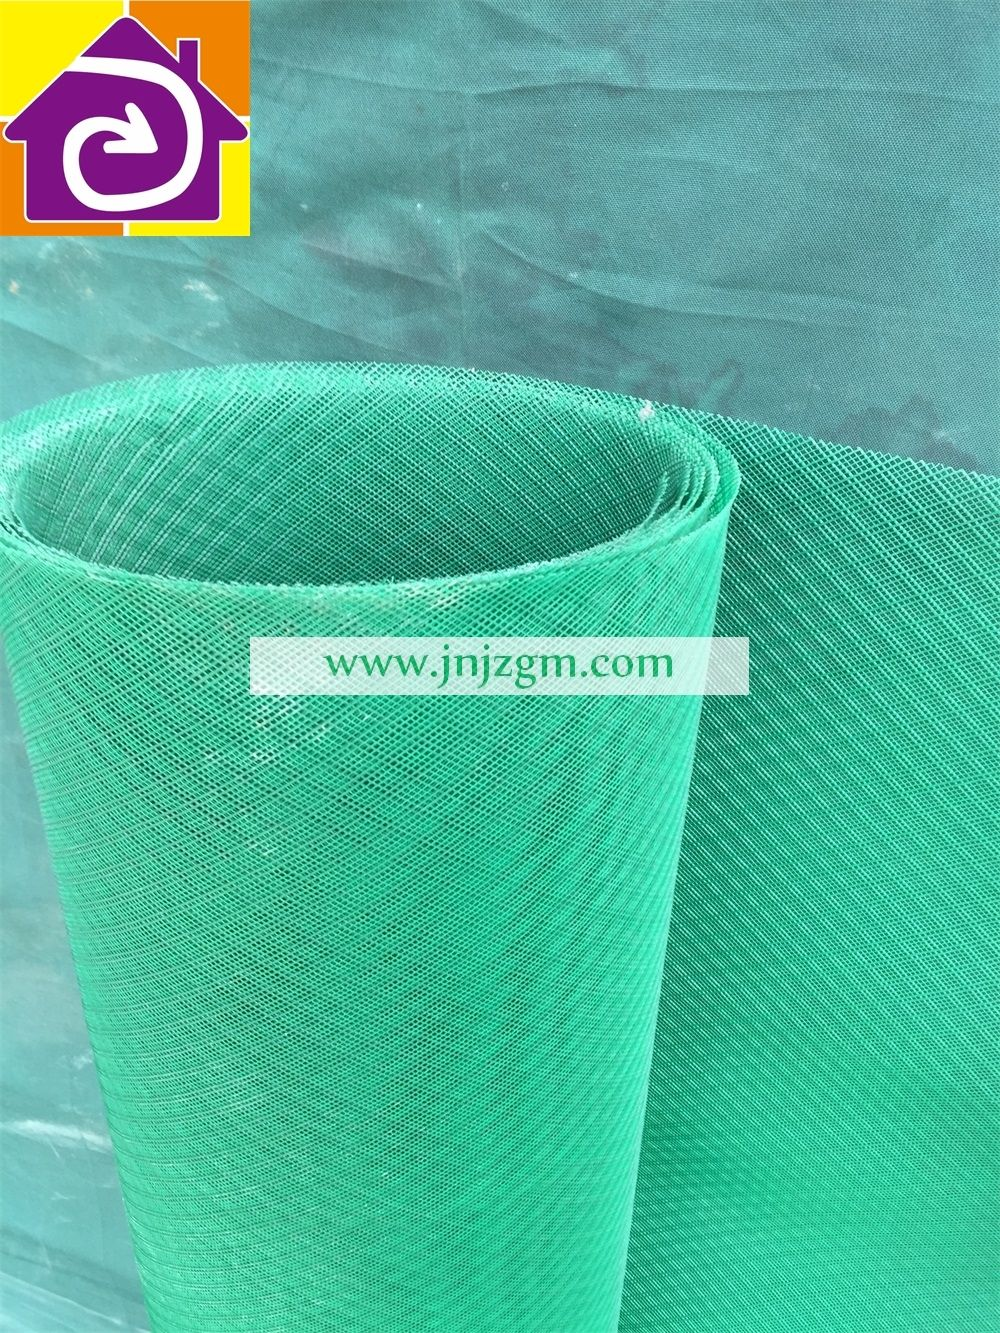 Golden Building Fine Insect Mesh Netting Fine Window Screen Insect Mesh Mesh Screen Window Screens